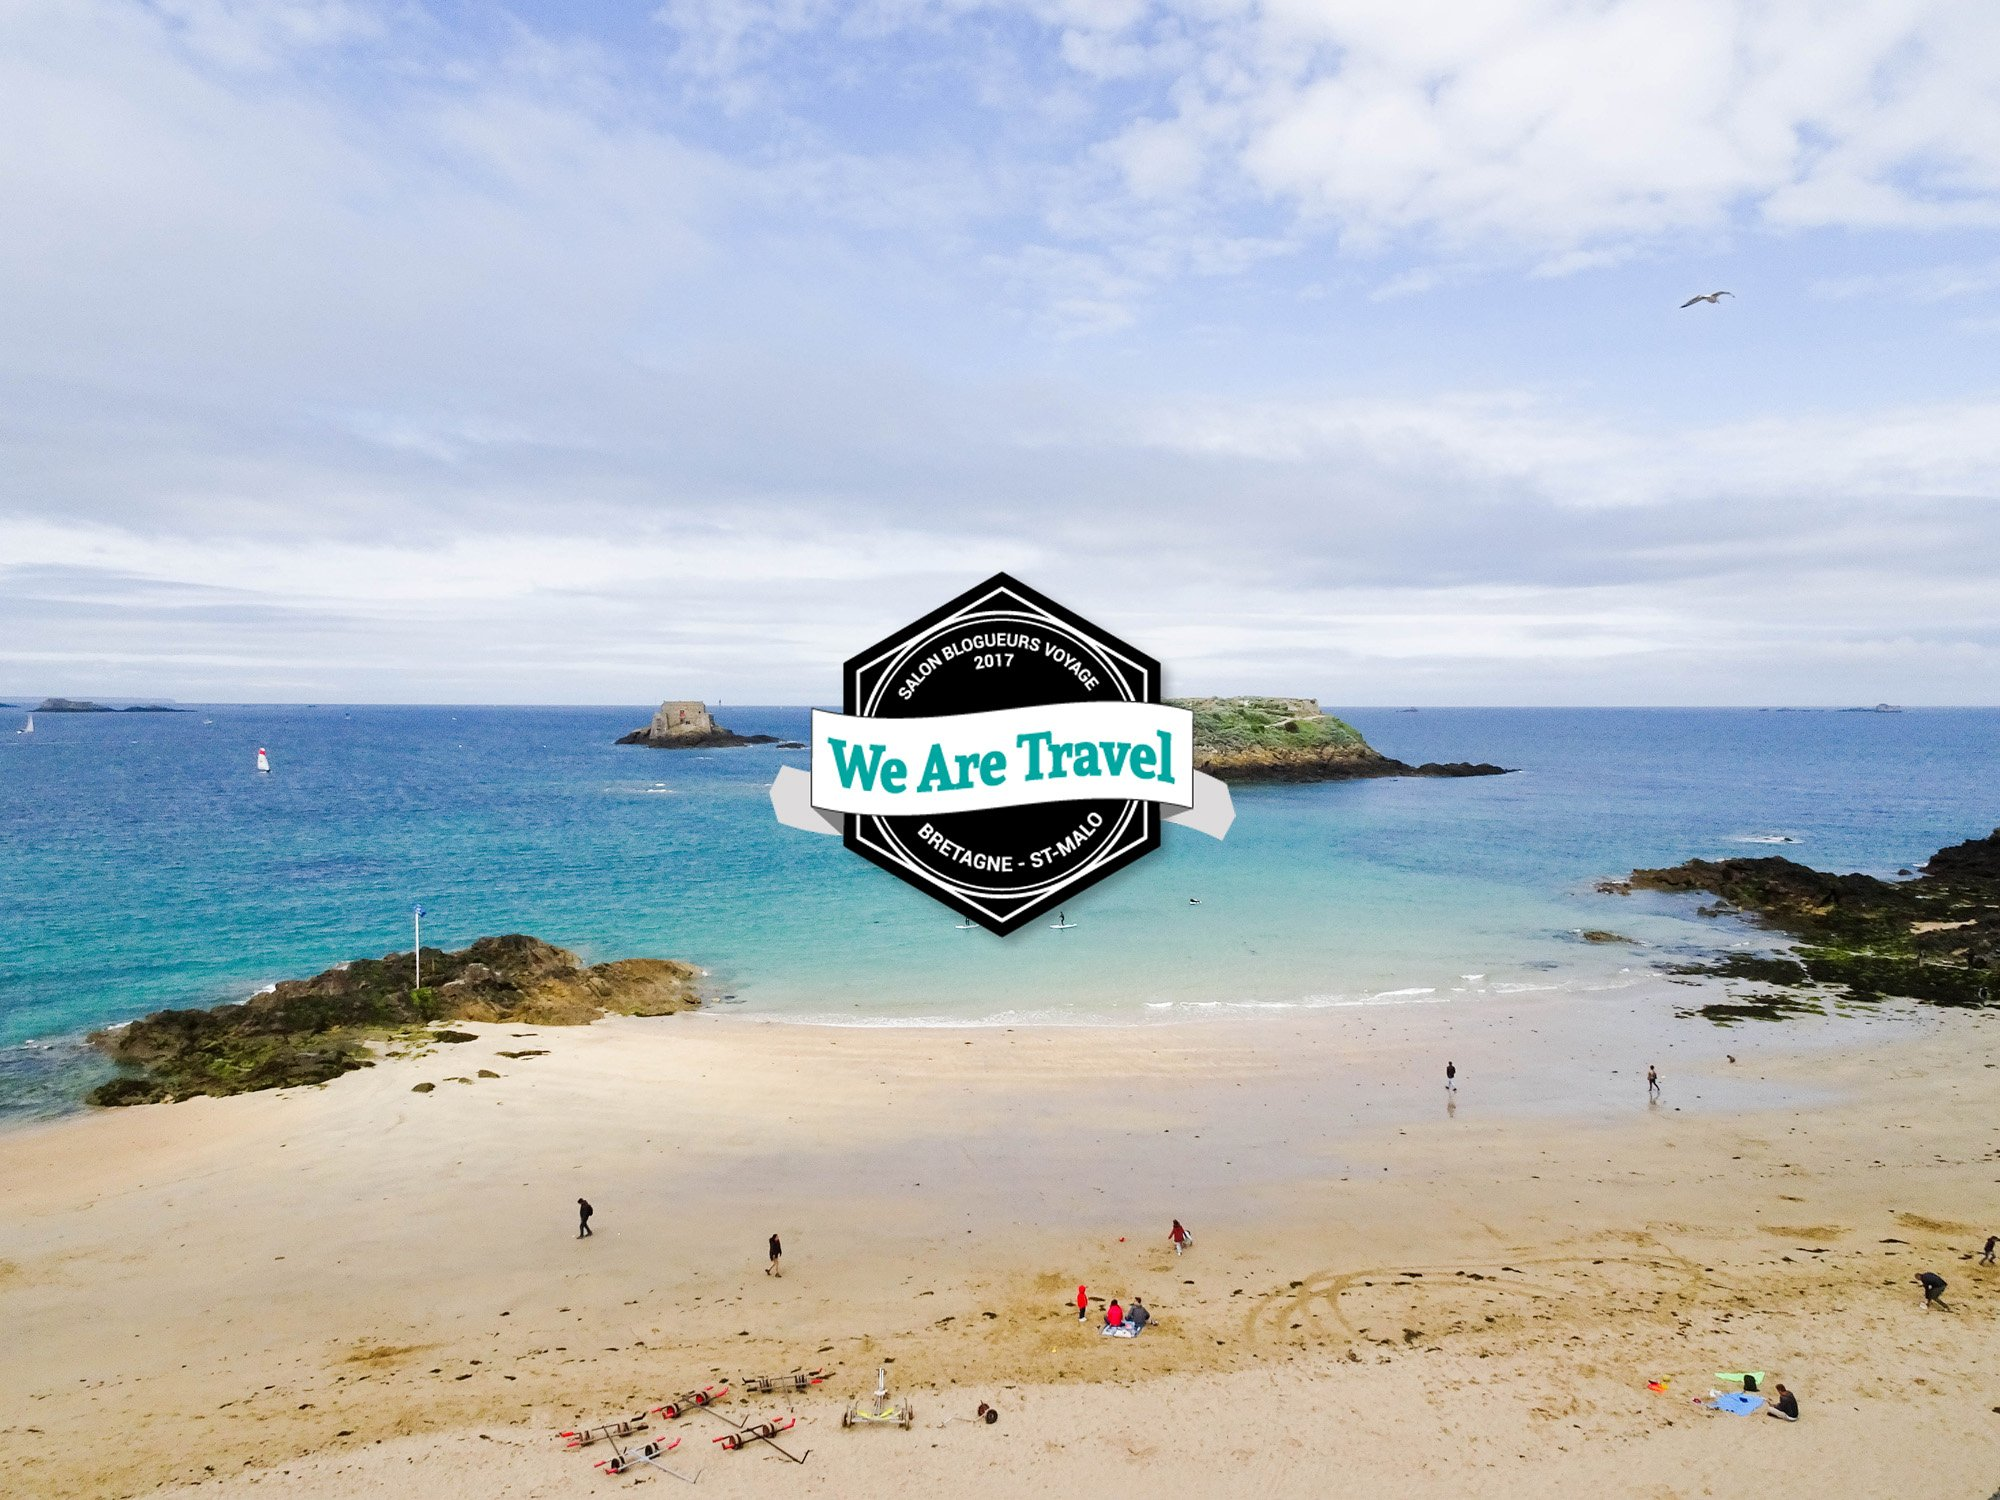 Le salon des blogueurs 2017 - We Are Travel - Saint Malo - Girltrotter